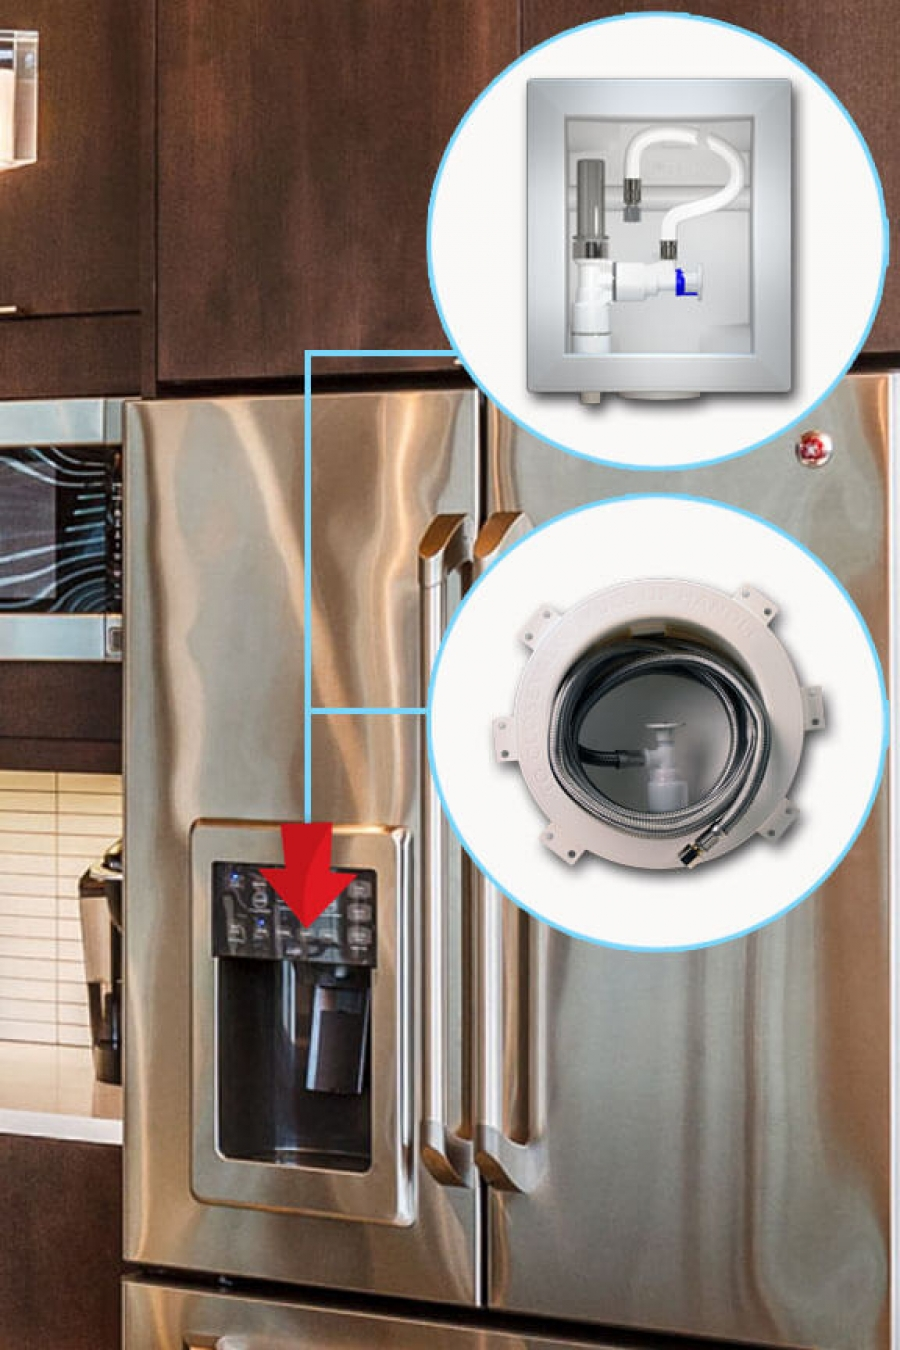 Ice Maker Outlet Box Accor Technology